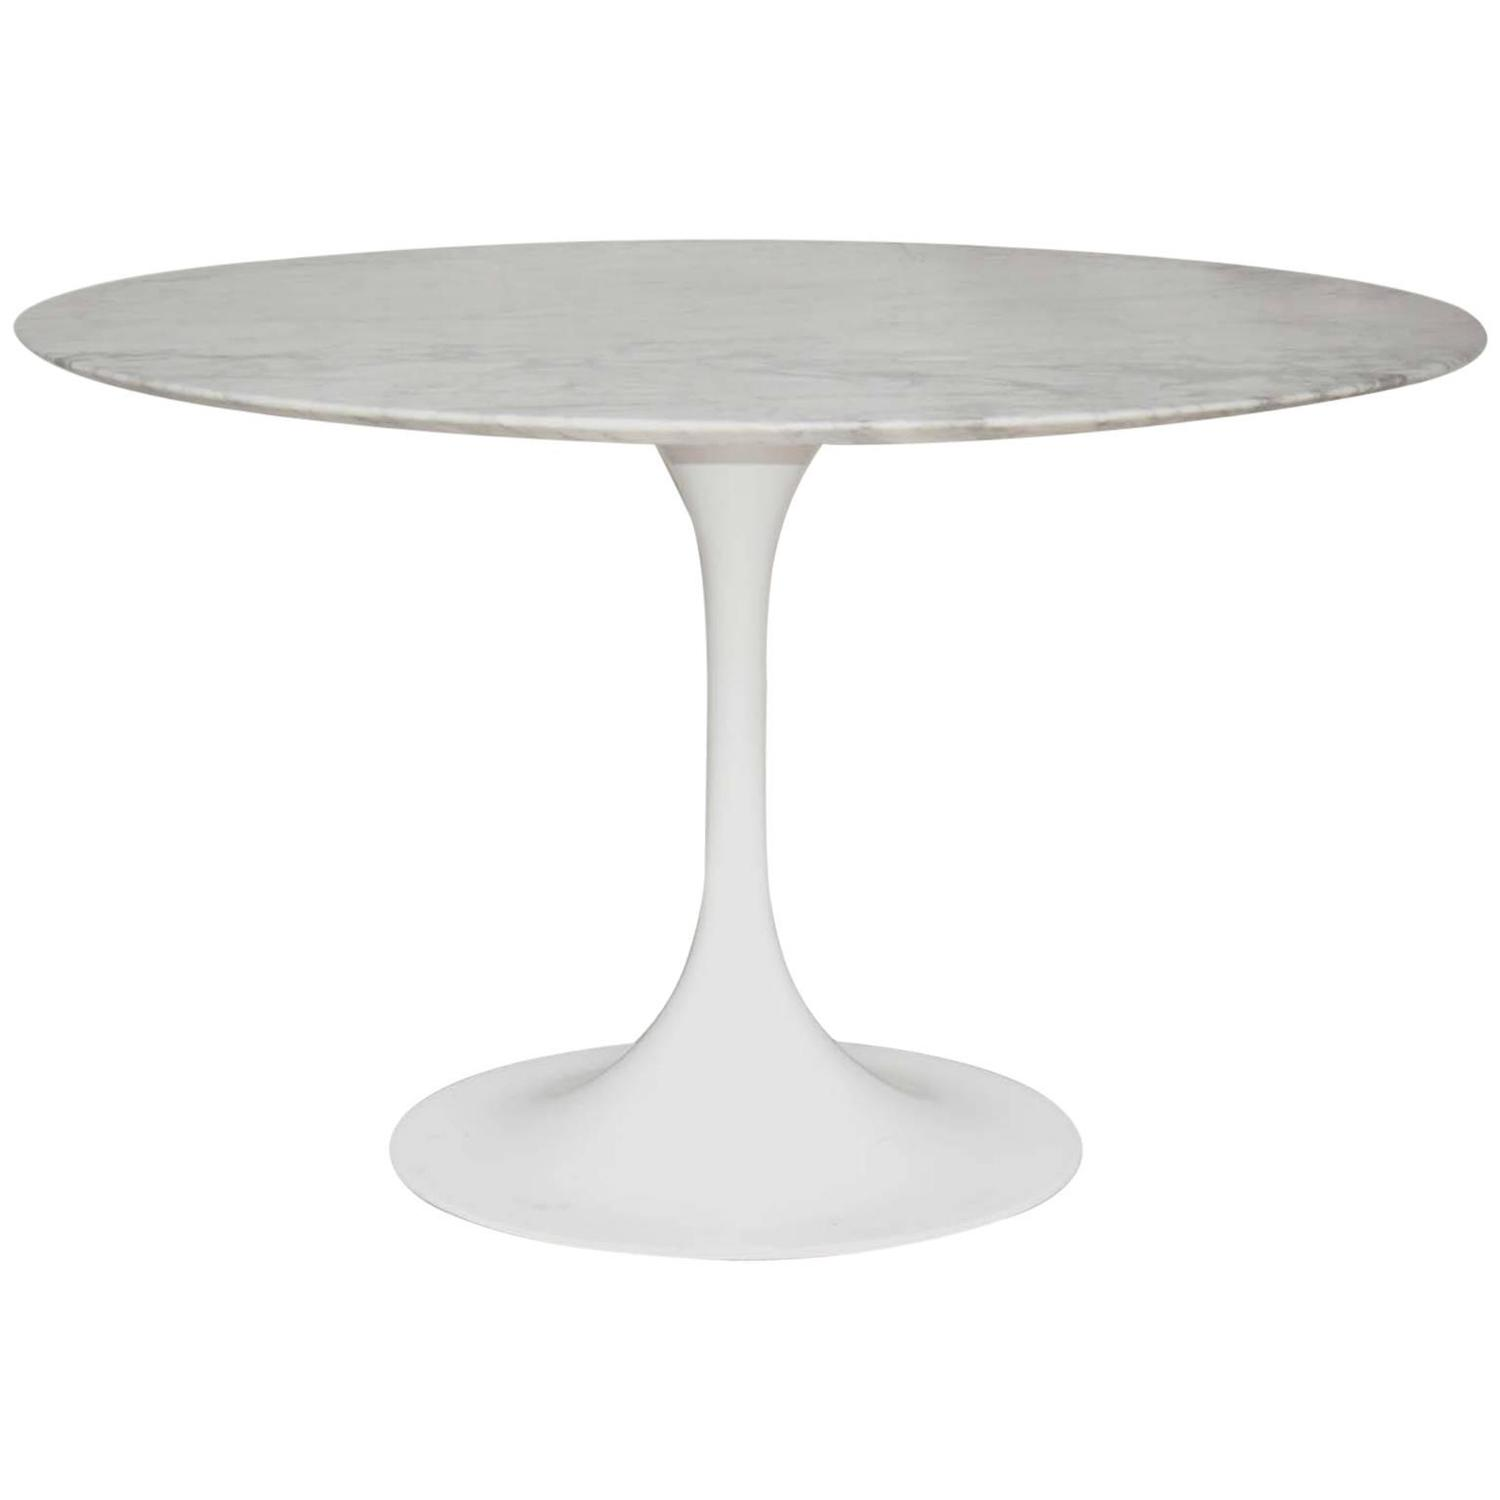 eero saarinen style tulip dining table marble top at 1stdibs. Black Bedroom Furniture Sets. Home Design Ideas